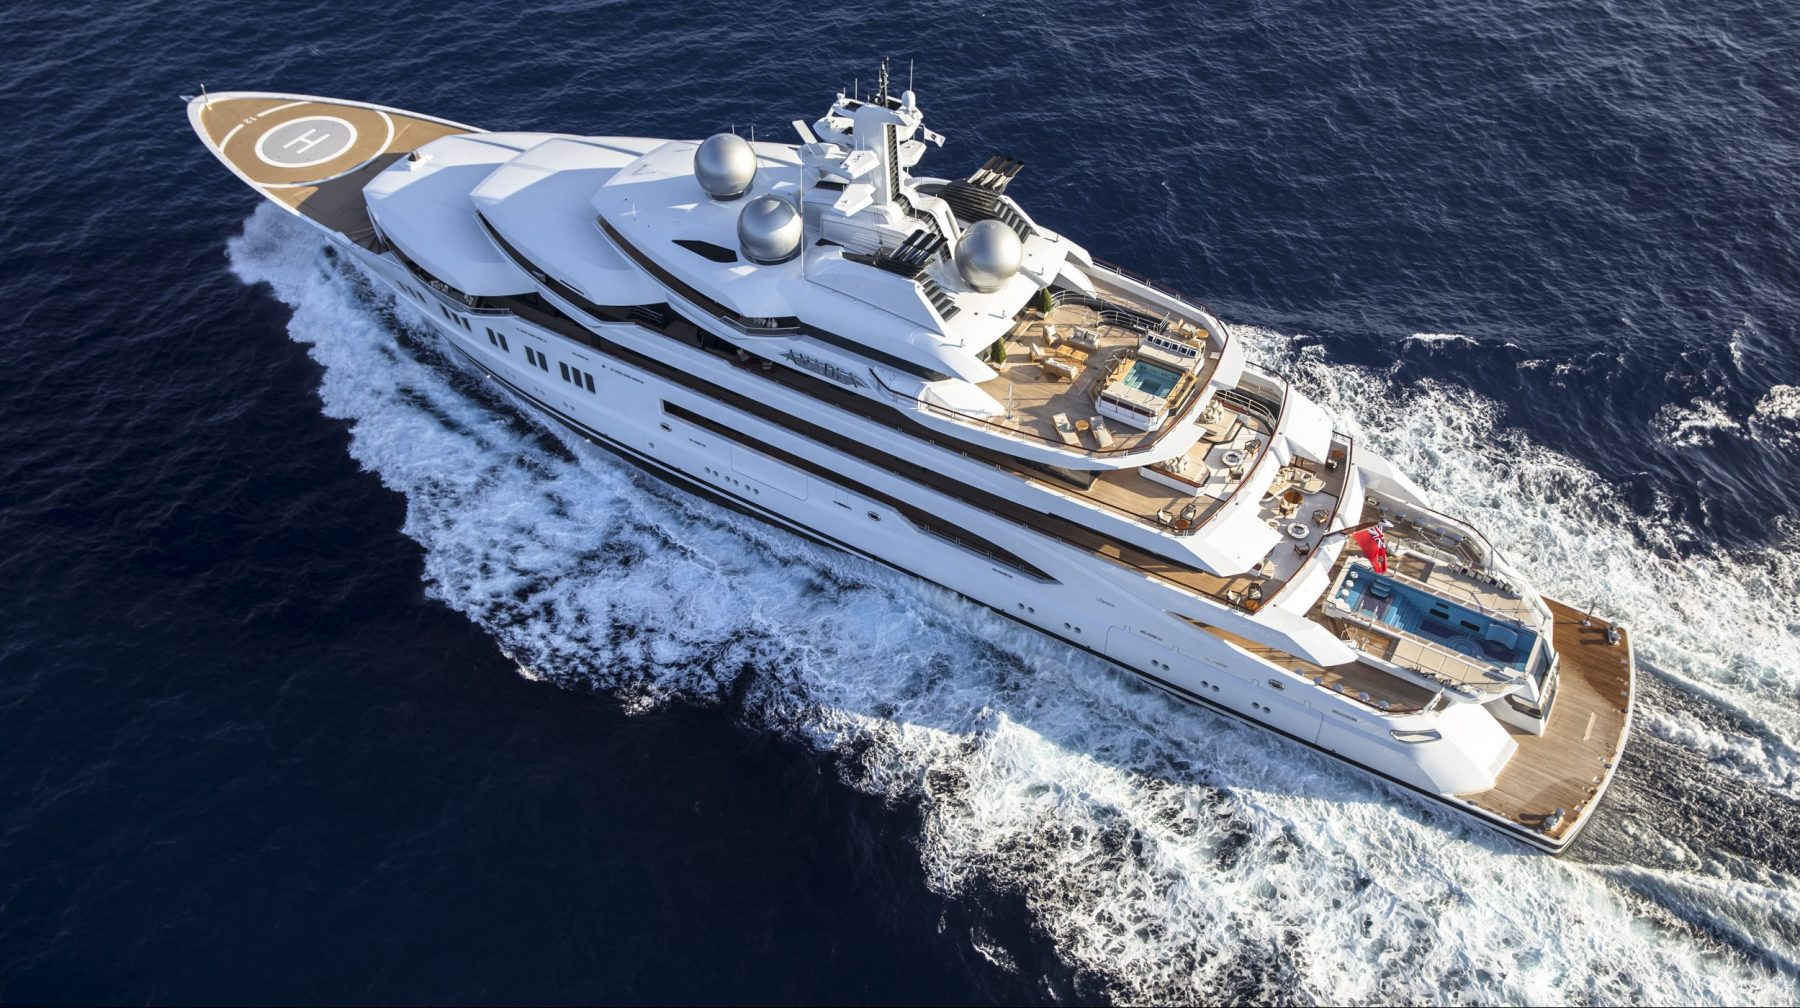 M/Y AMADEA, 106.10m Motor Yacht by LÜRSSEN, showcased at Monaco Yacht Show 2019 | FINEST LIVING | Finest Residences